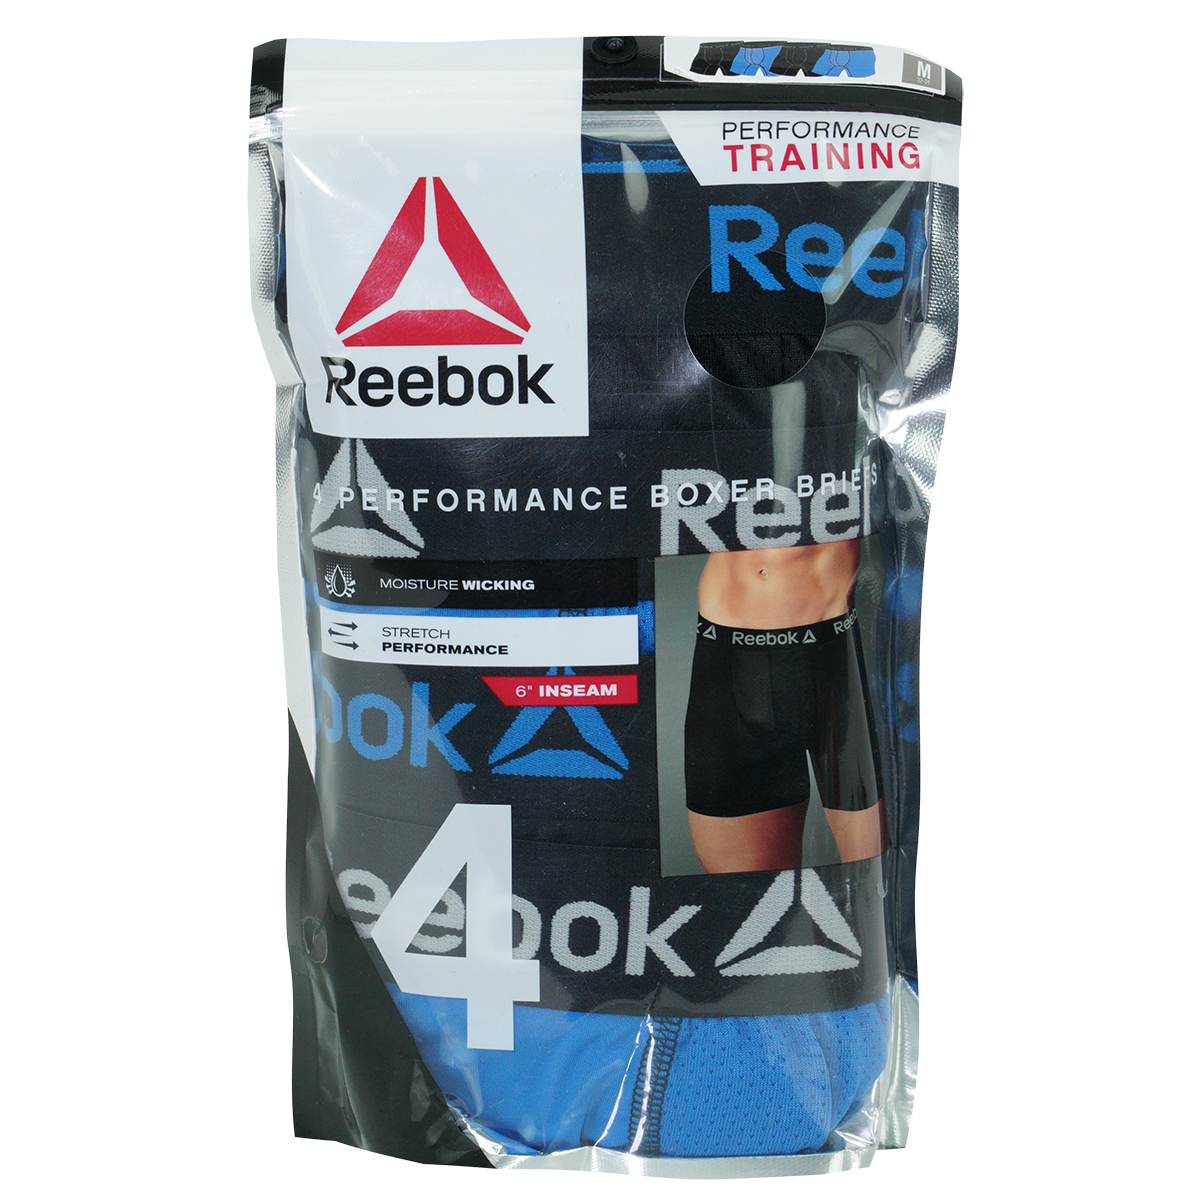 Reebok-Men-039-s-Performance-Boxer-Briefs-4-Pack thumbnail 7